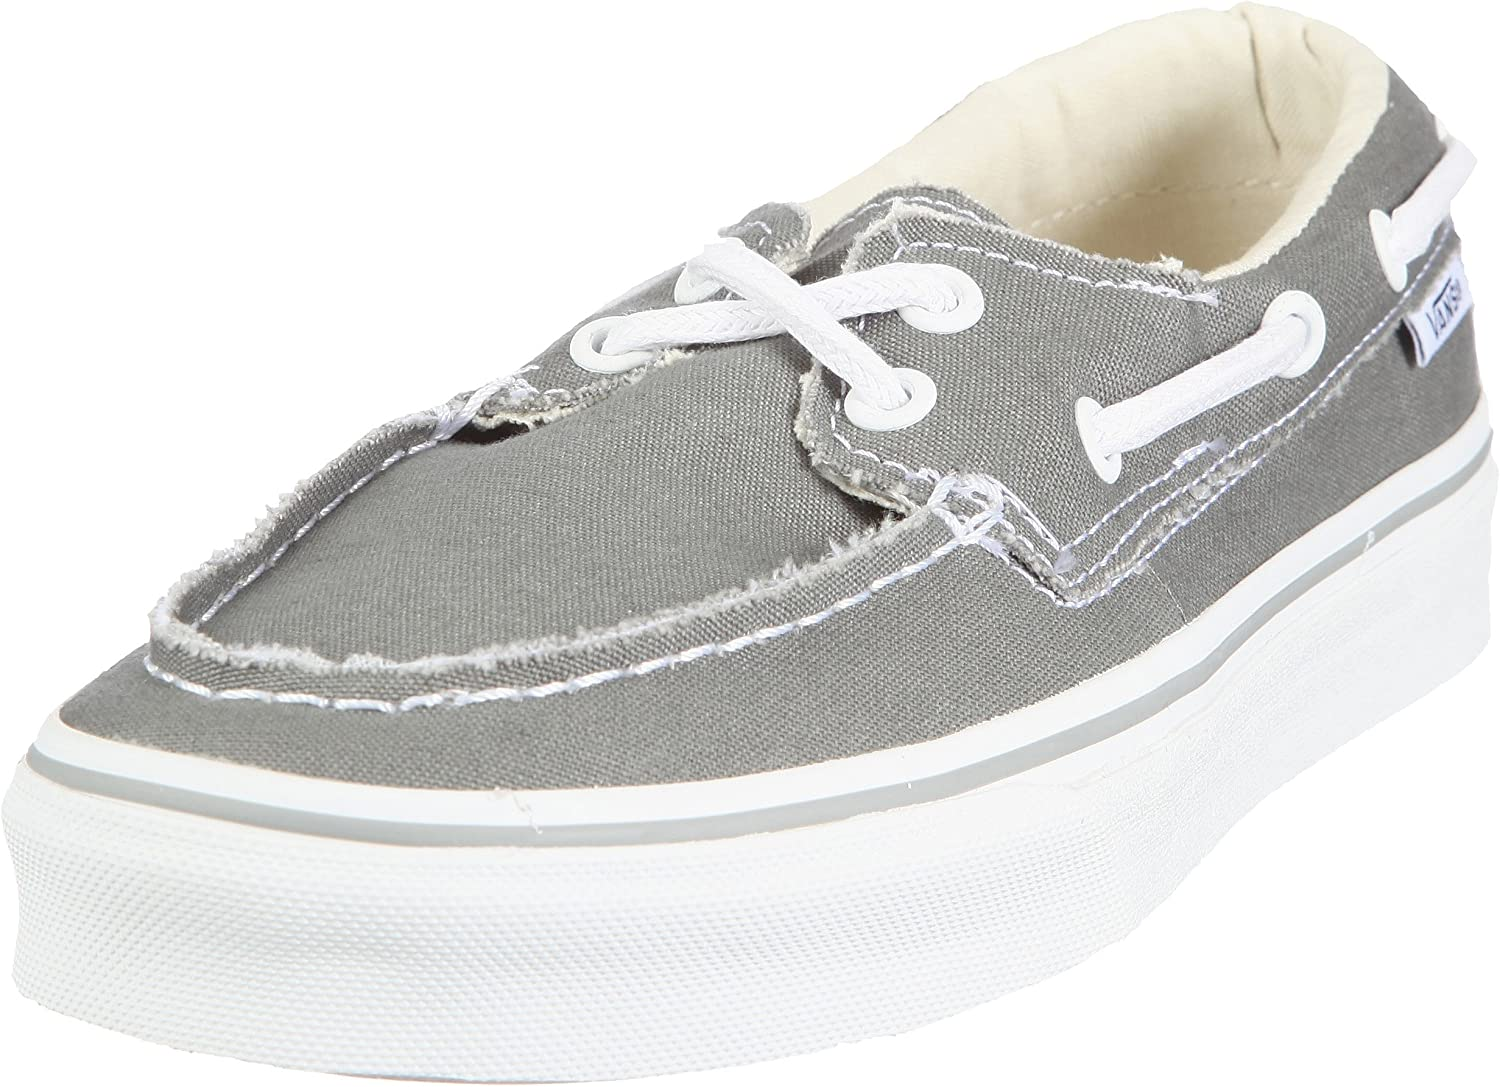 5c52064c4ee72 Vans Zapato Del Barco shoes Casual nnhyln3684-New Shoes - climbing ...